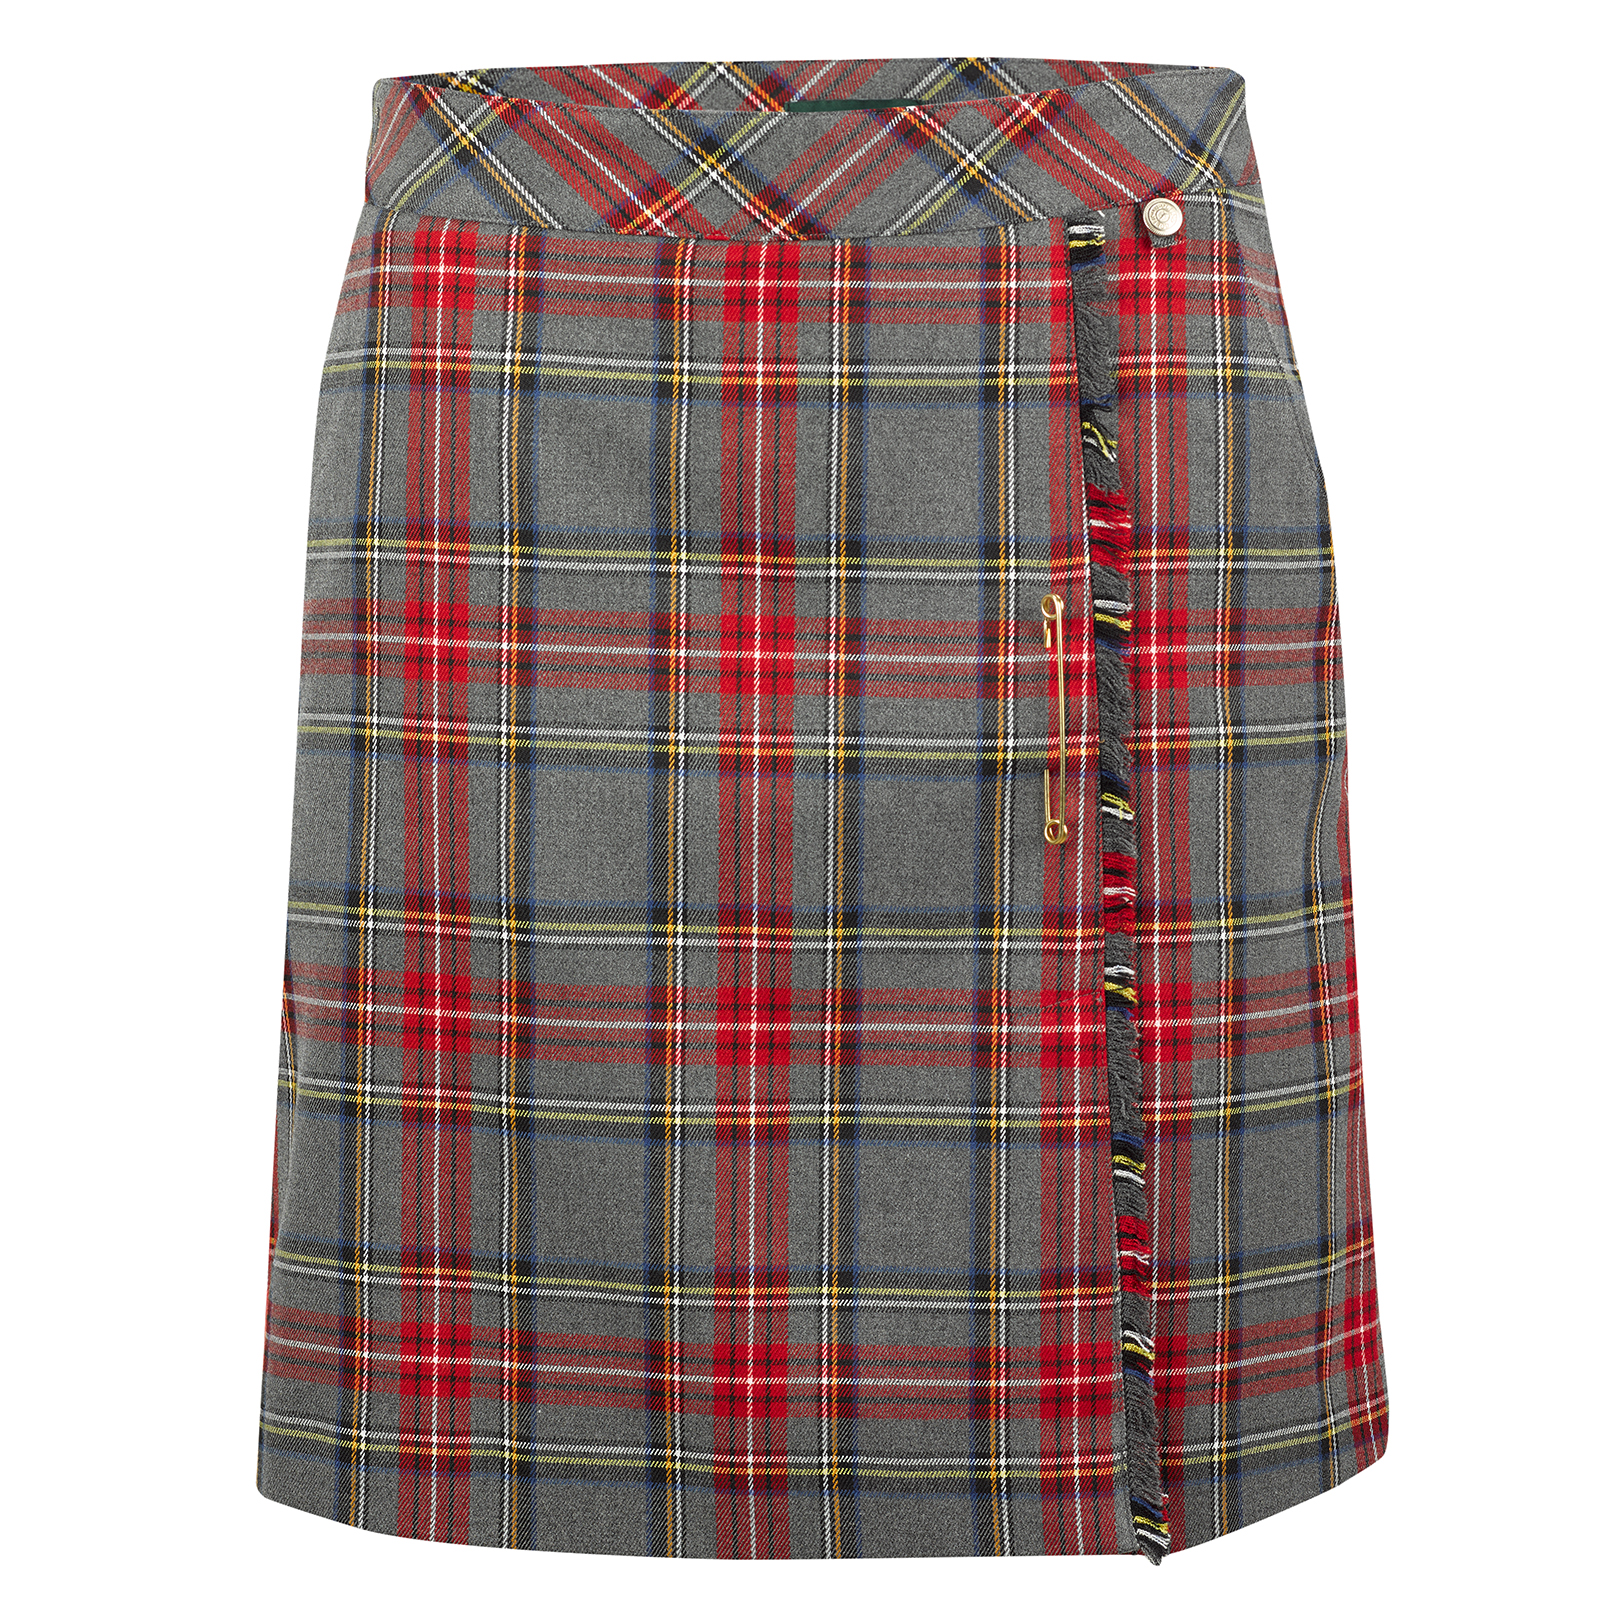 Longer checked ladies' golf skort from soft stretch material with interior shorts